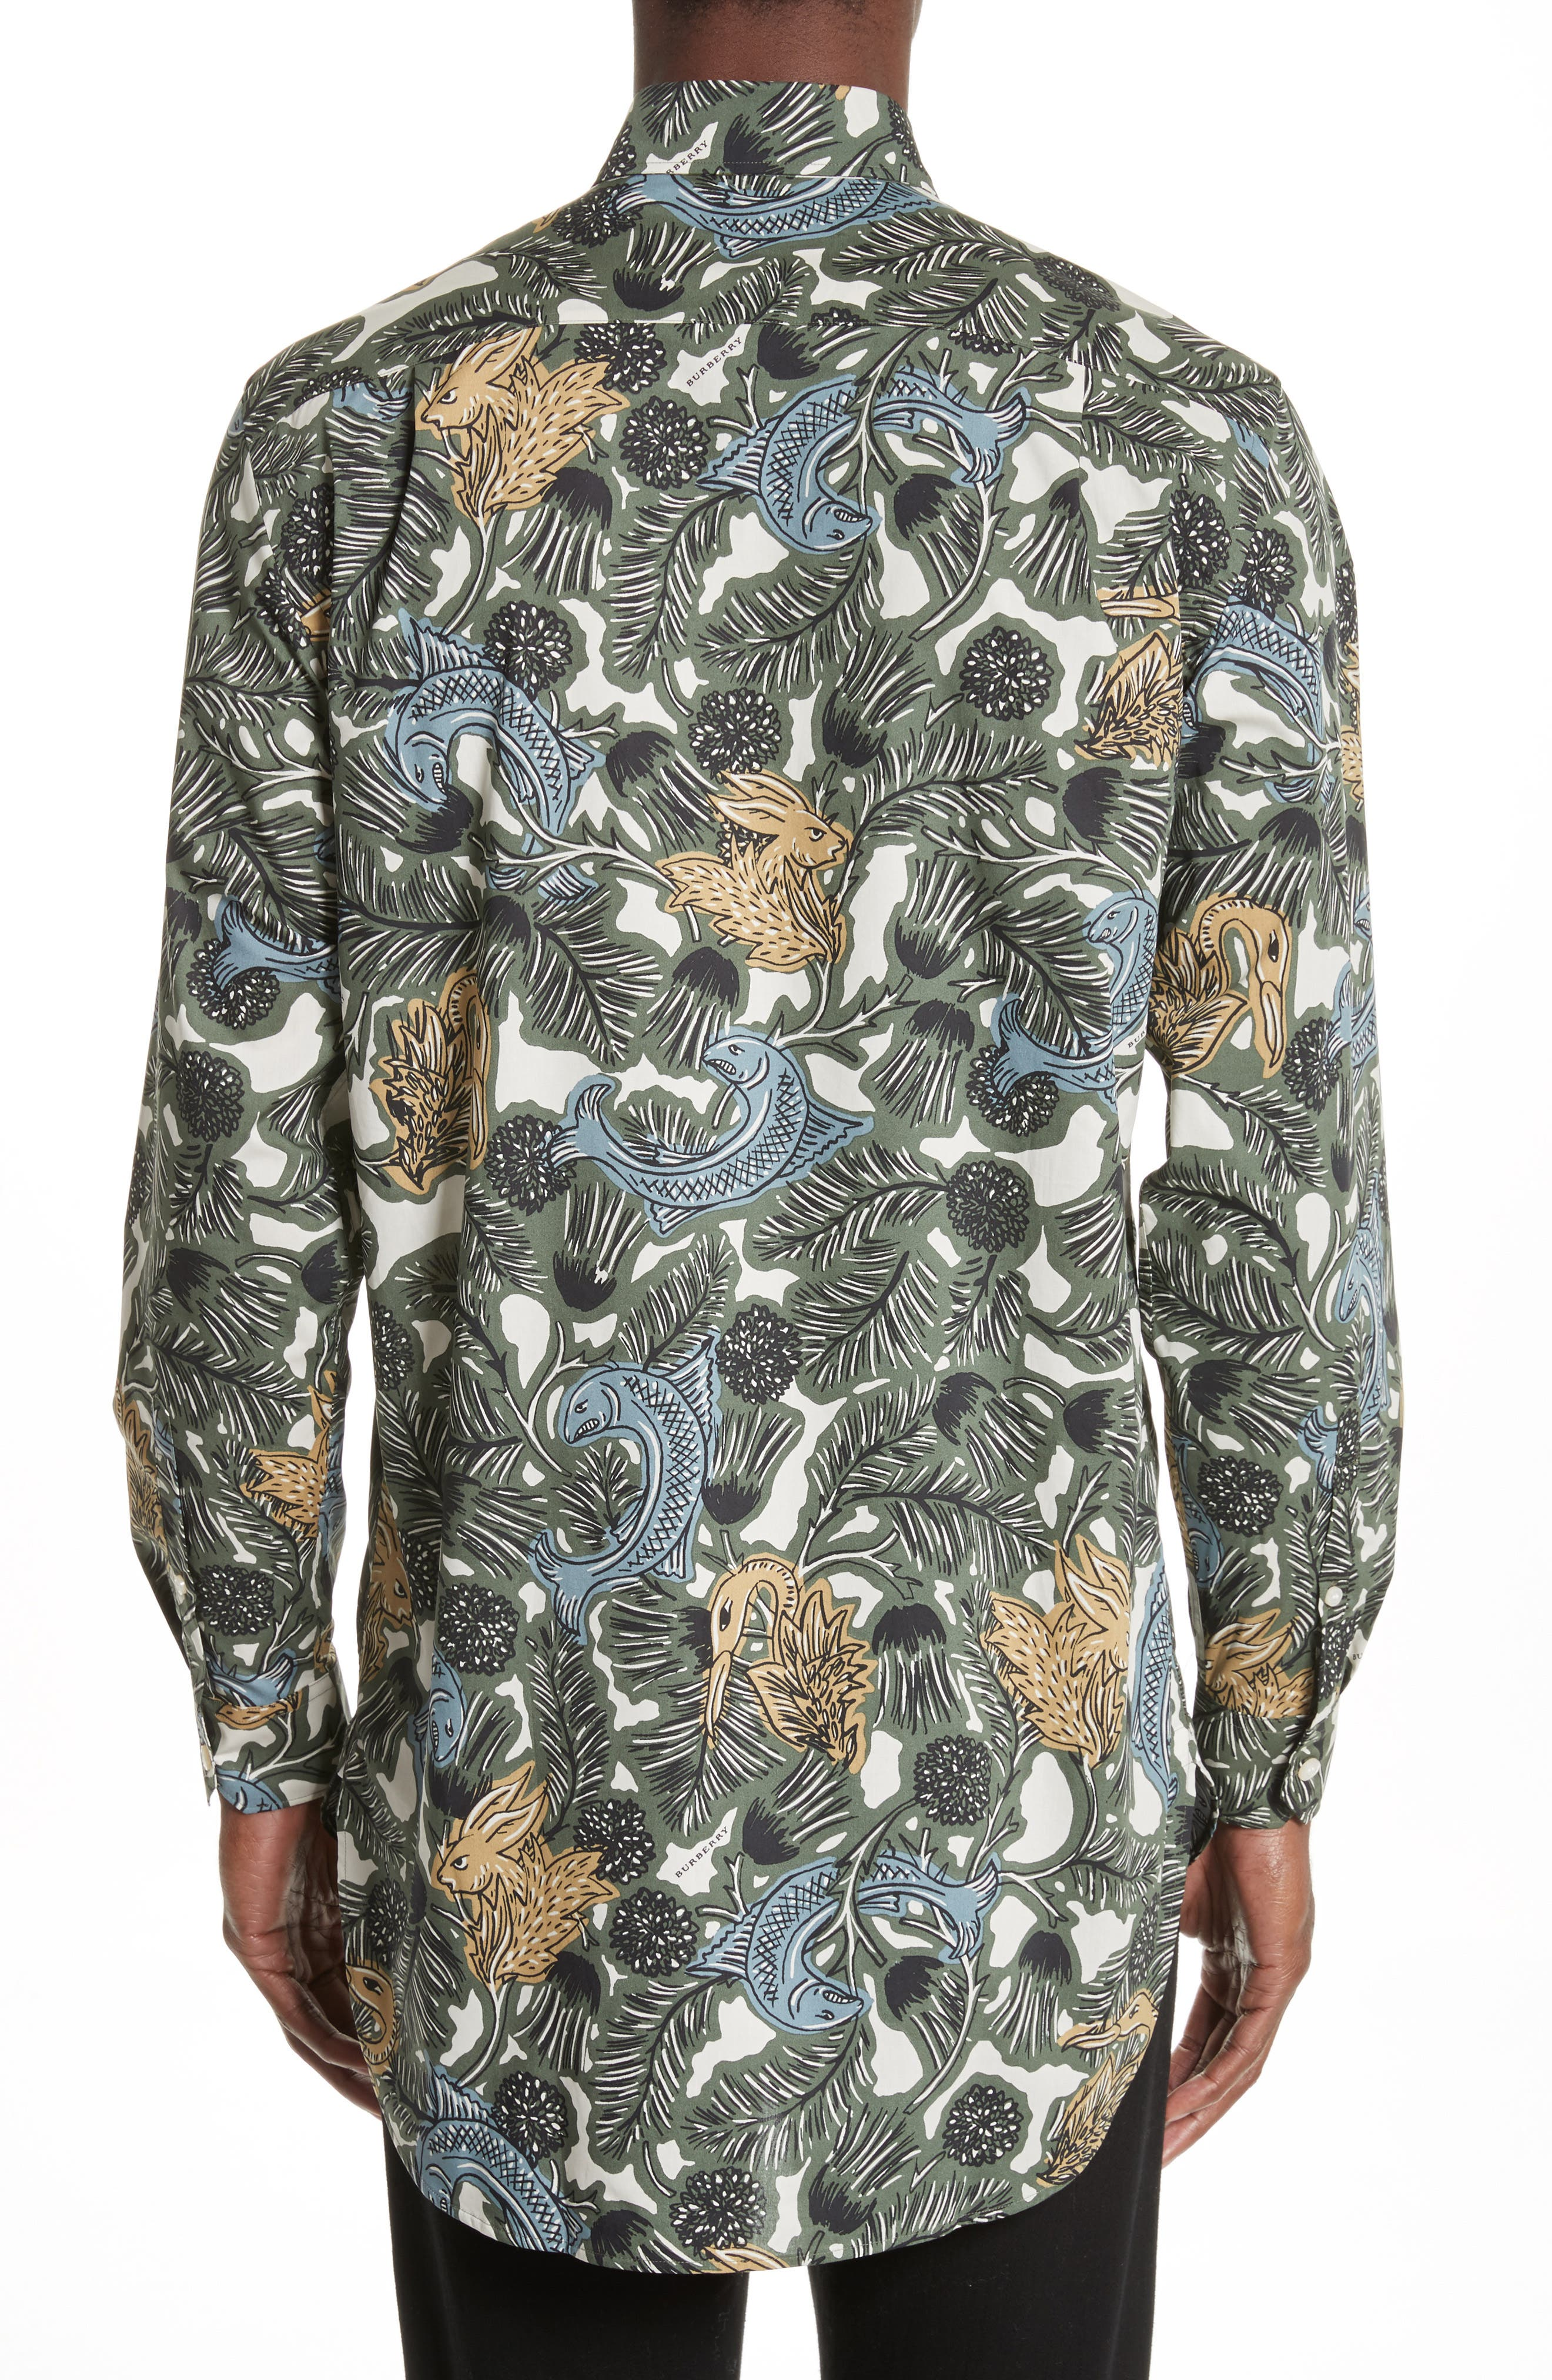 Whinfell Beasts Cotton Sport Shirt,                             Alternate thumbnail 2, color,                             305